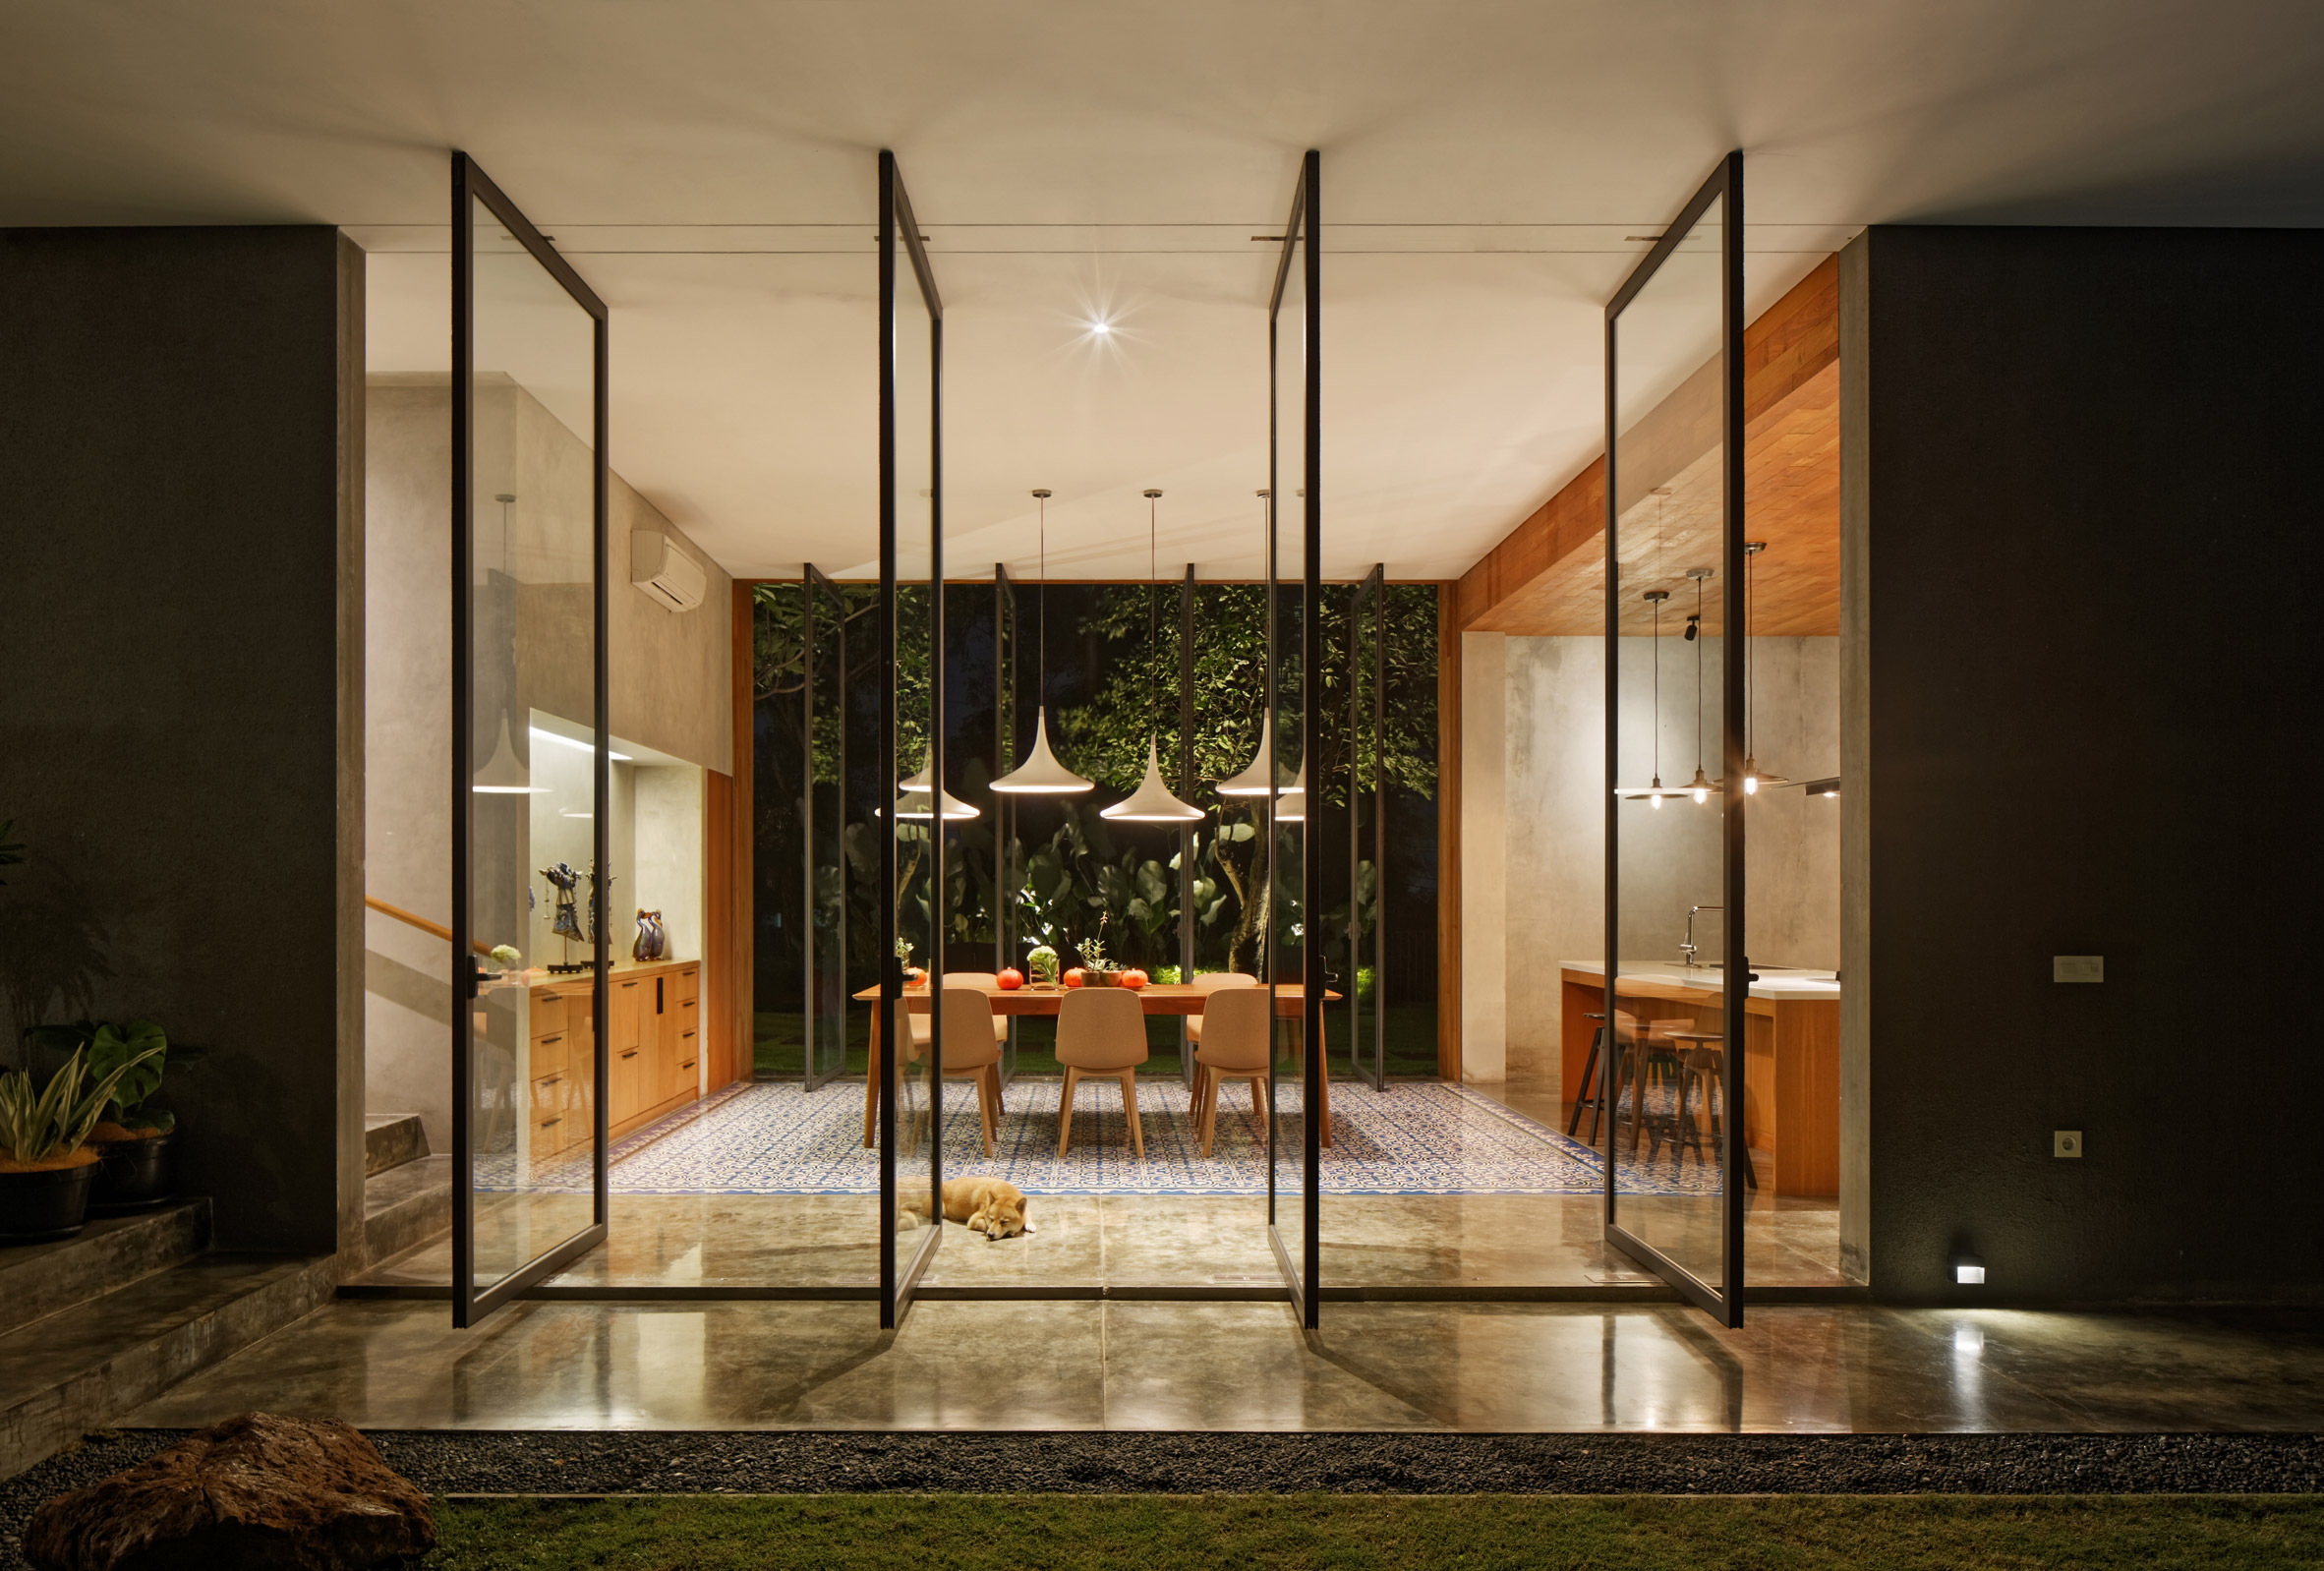 house-inside-outside-tamara-wibowo-architecture-residential-indonesia_dezeen_2364_col_17.jpg